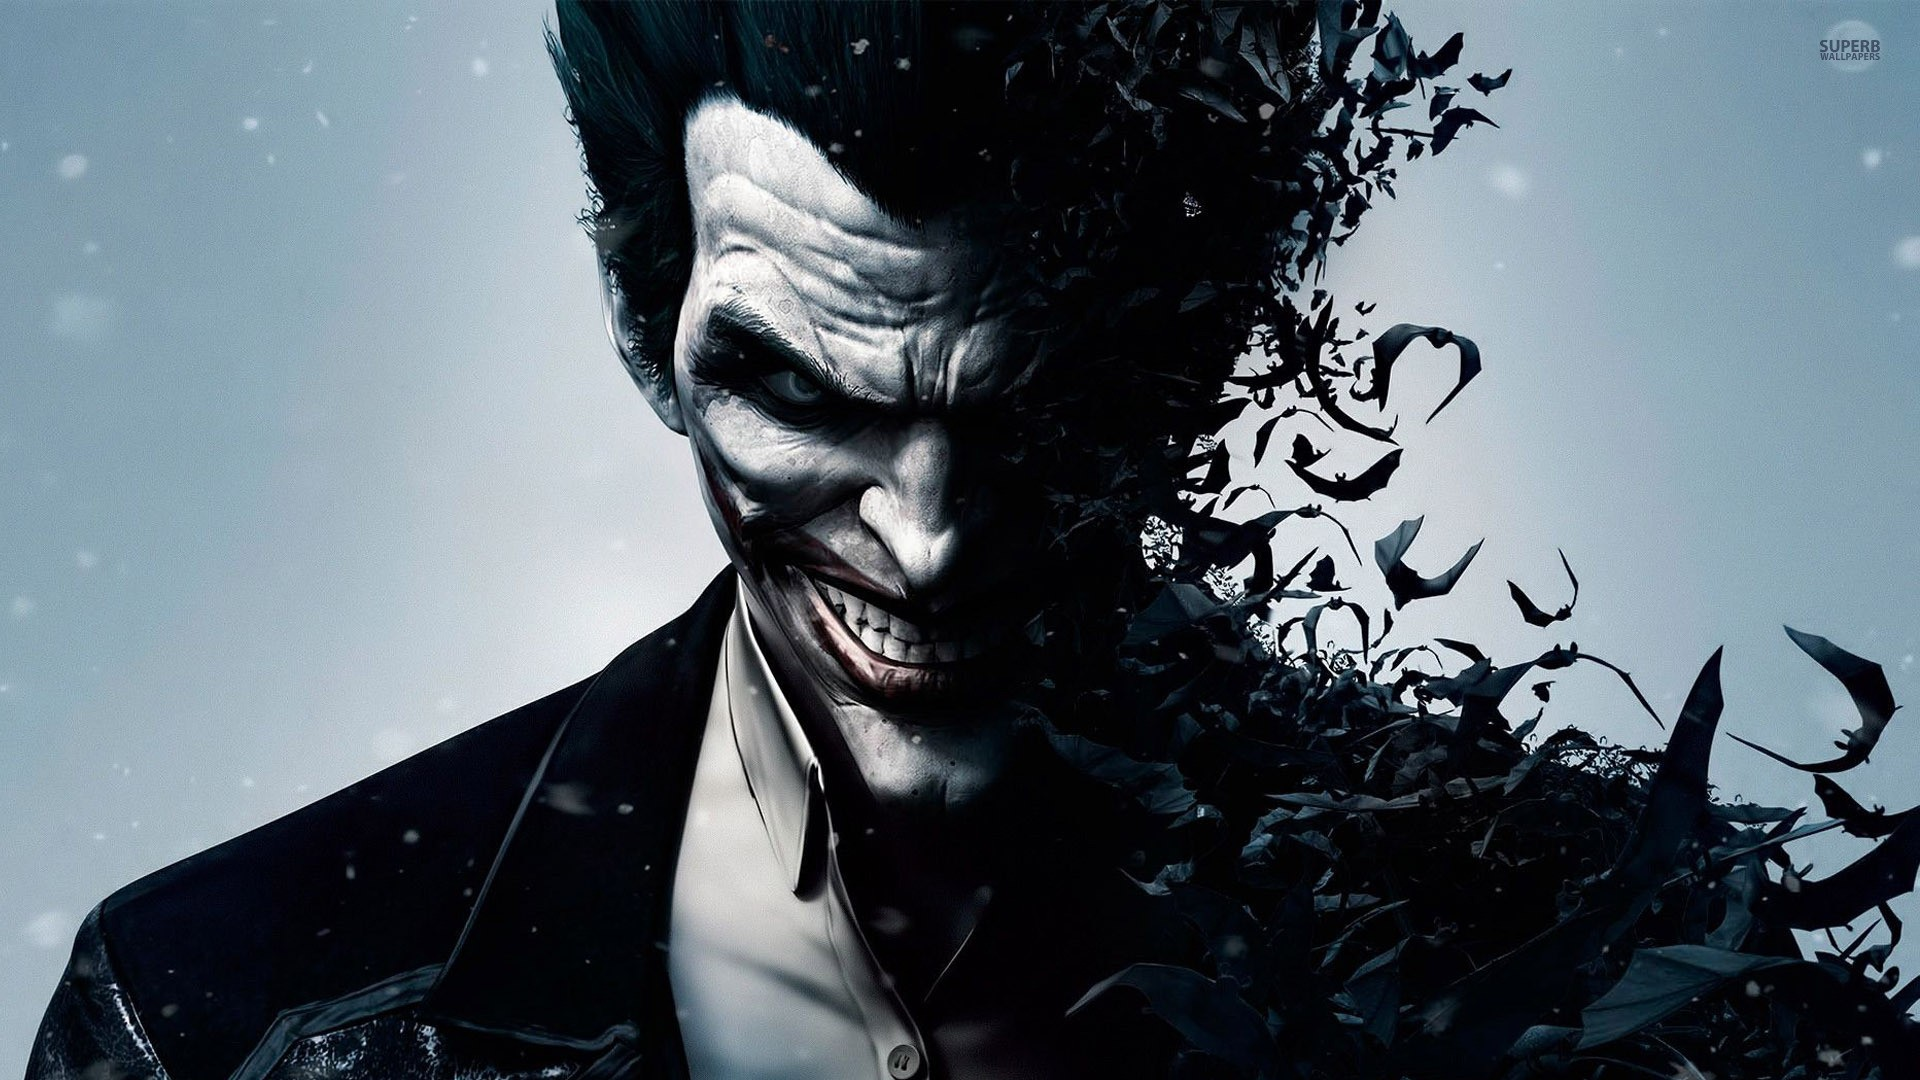 joker background ·① download free awesome full hd backgrounds for